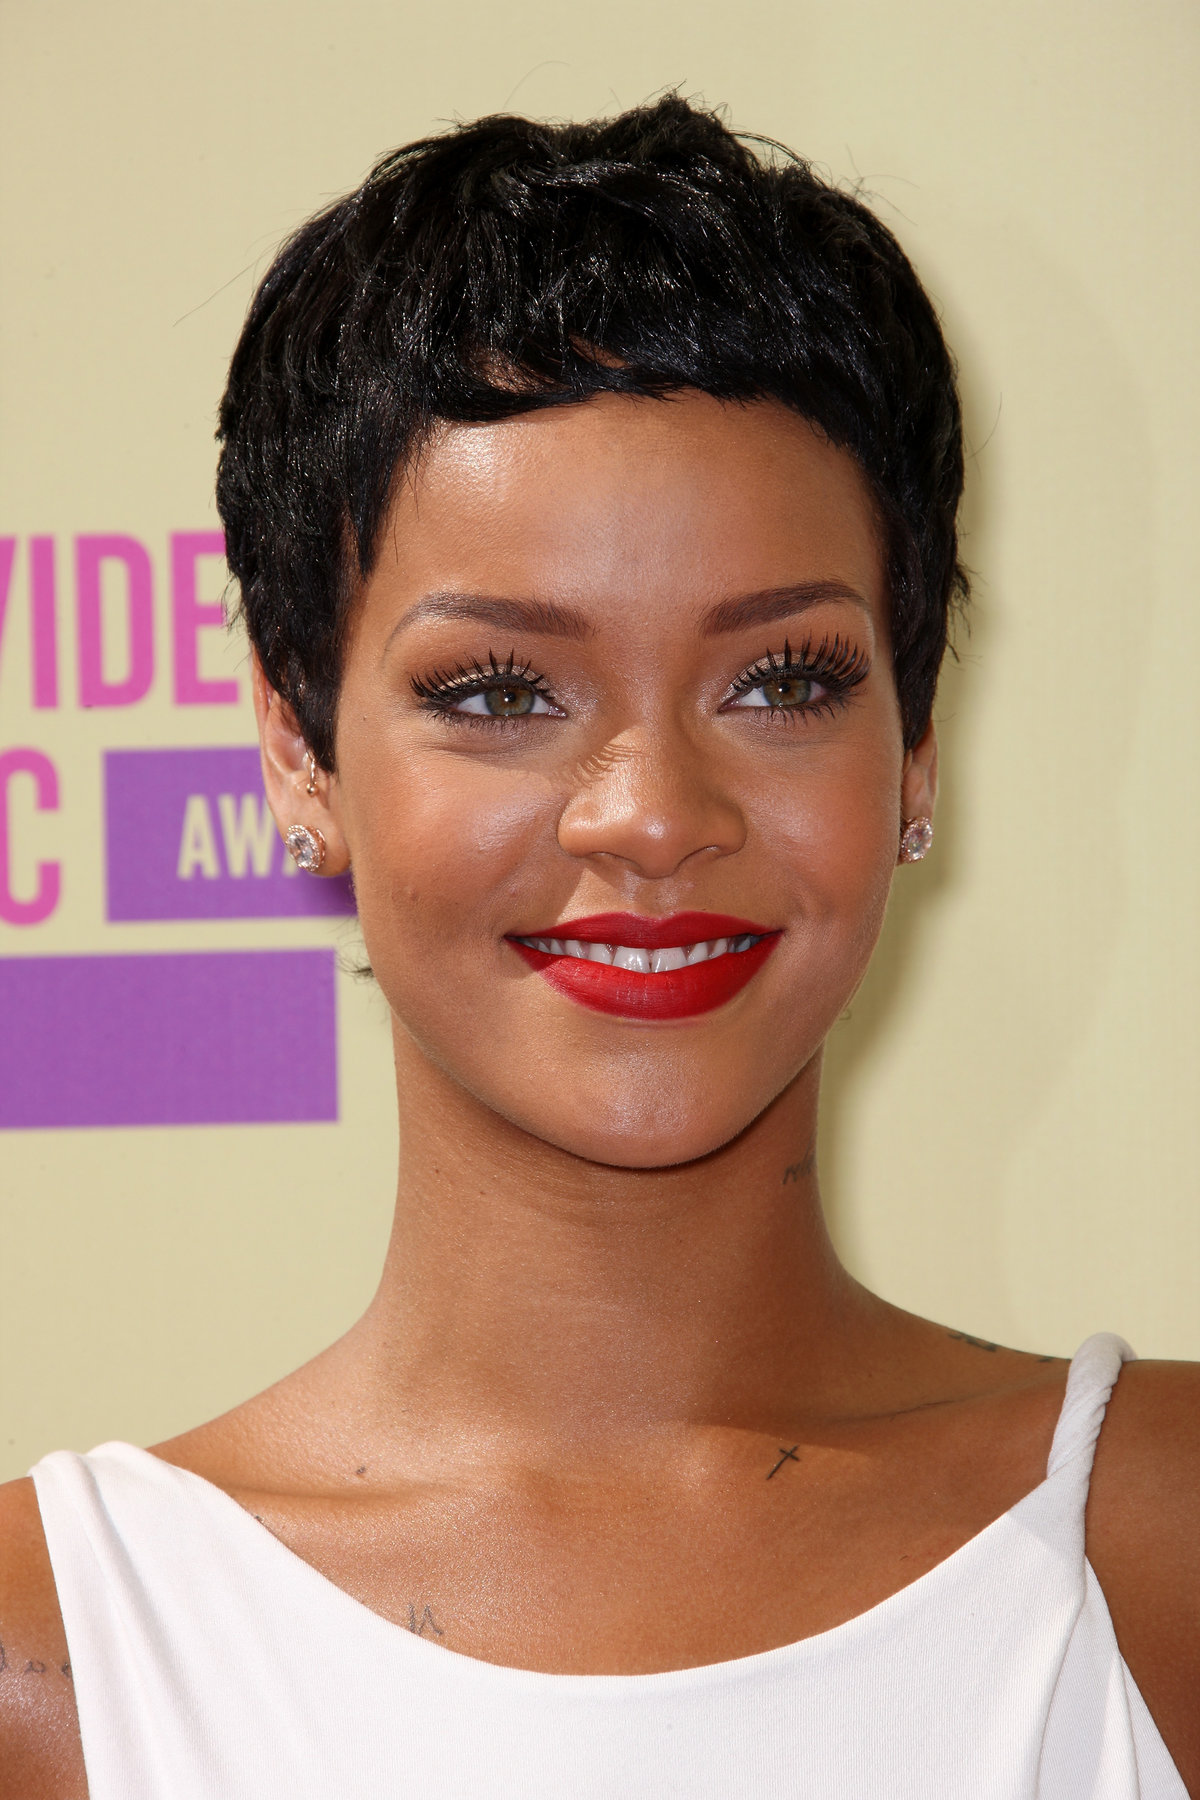 Pictures of rihanna short hairstyles Short Boy Cuts for Women - Hairstyles Weekly